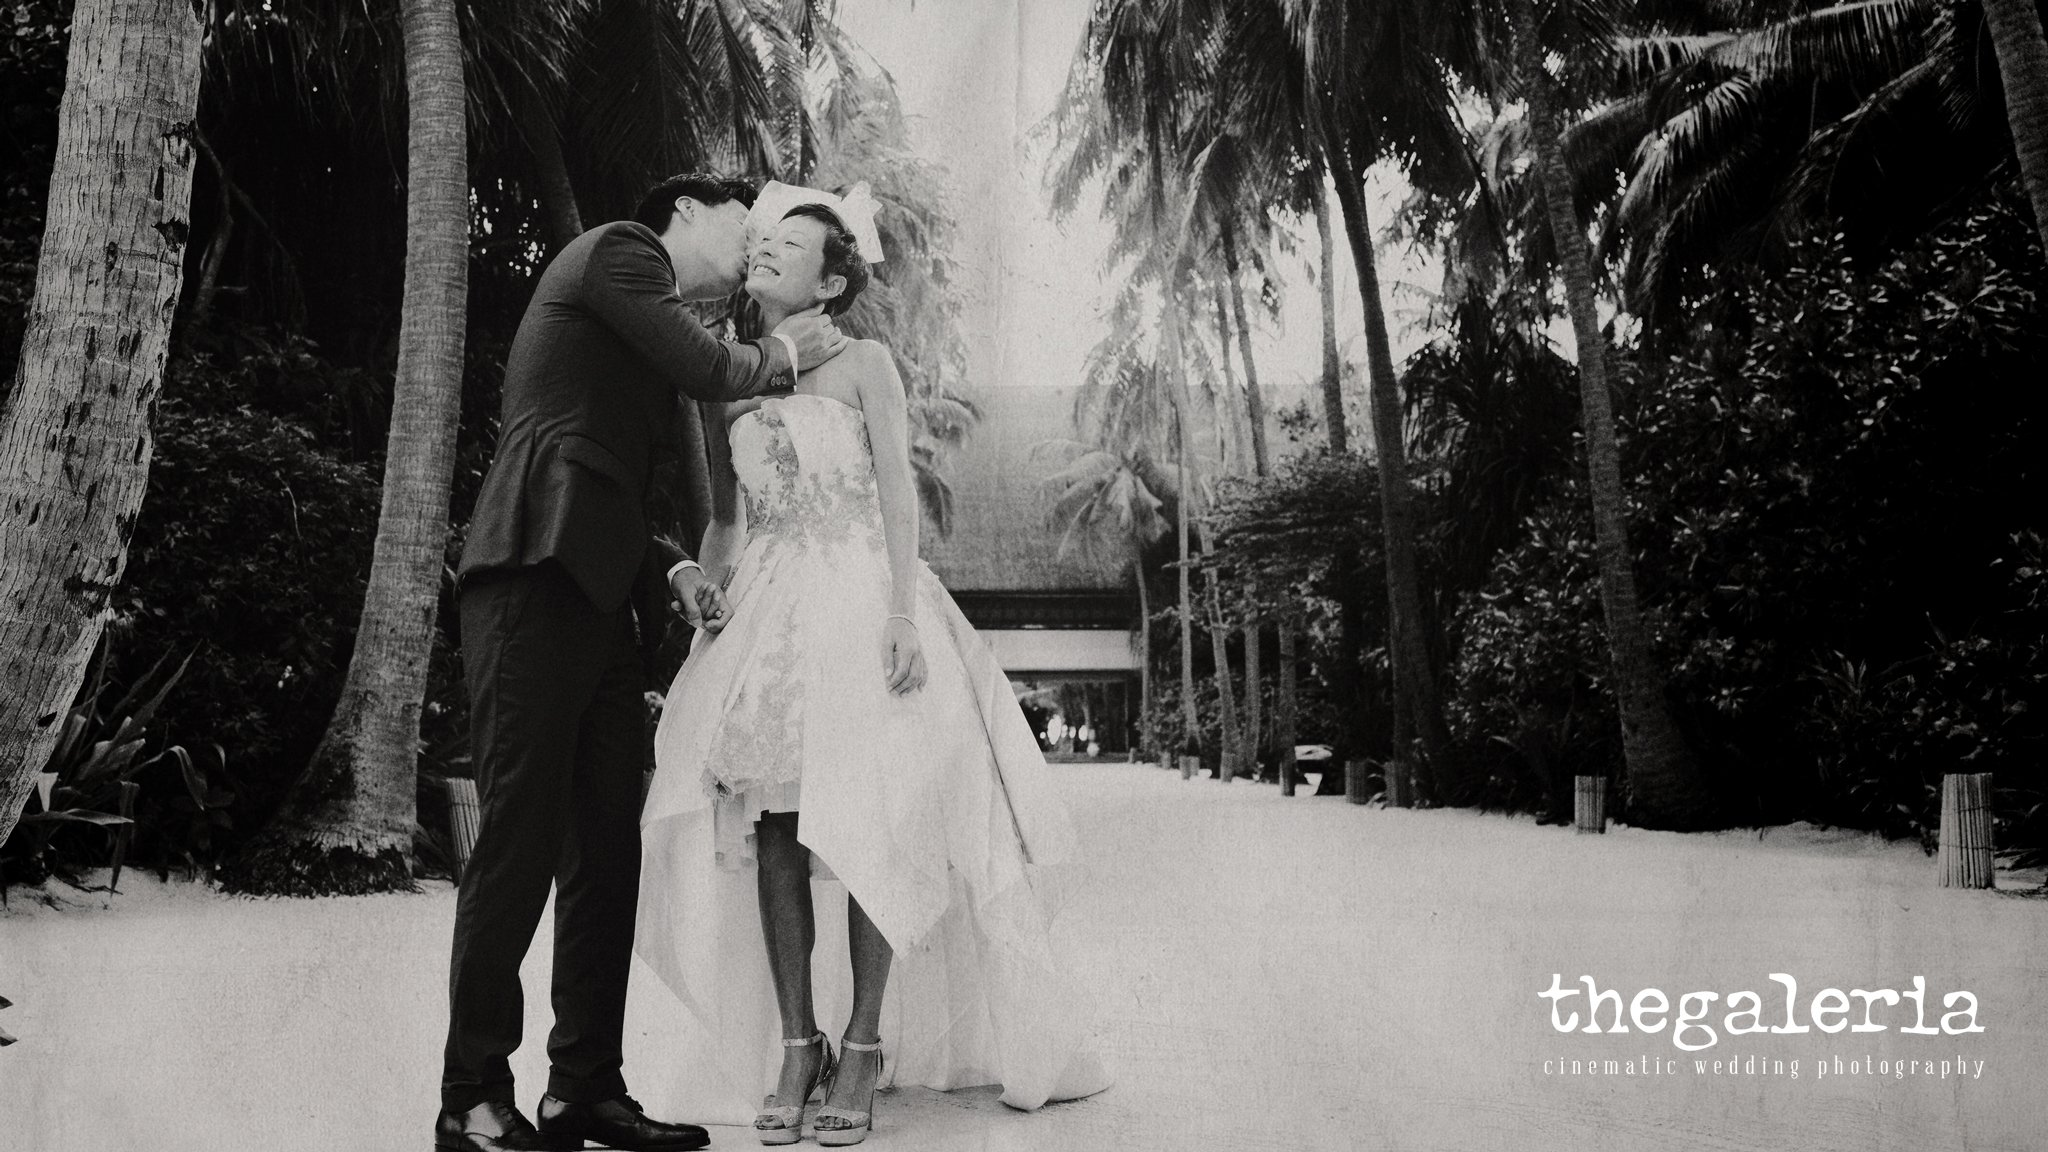 Maldives Pre-Wedding & Destination Weddings by Film Wedding Photographer Brian Ho from thegaleria